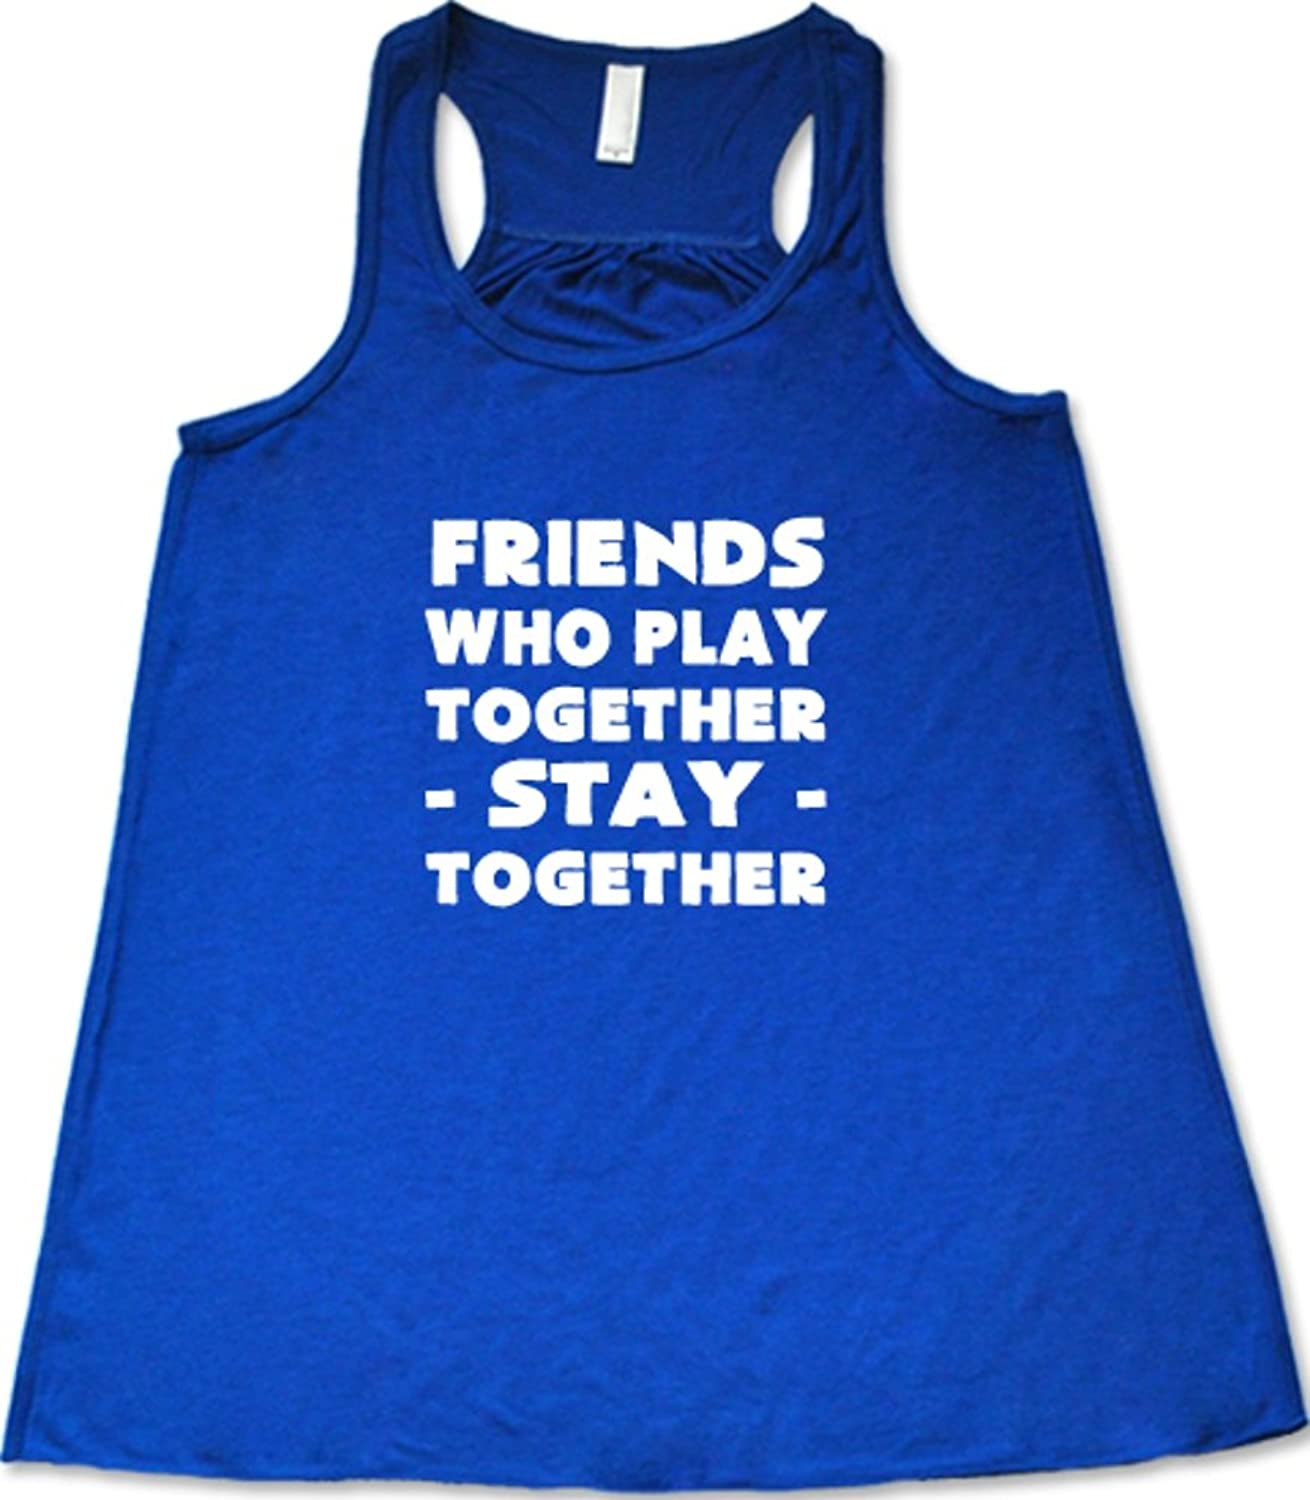 Constantly Varied Women's Friends Who Play Together Stay Together Tank Top